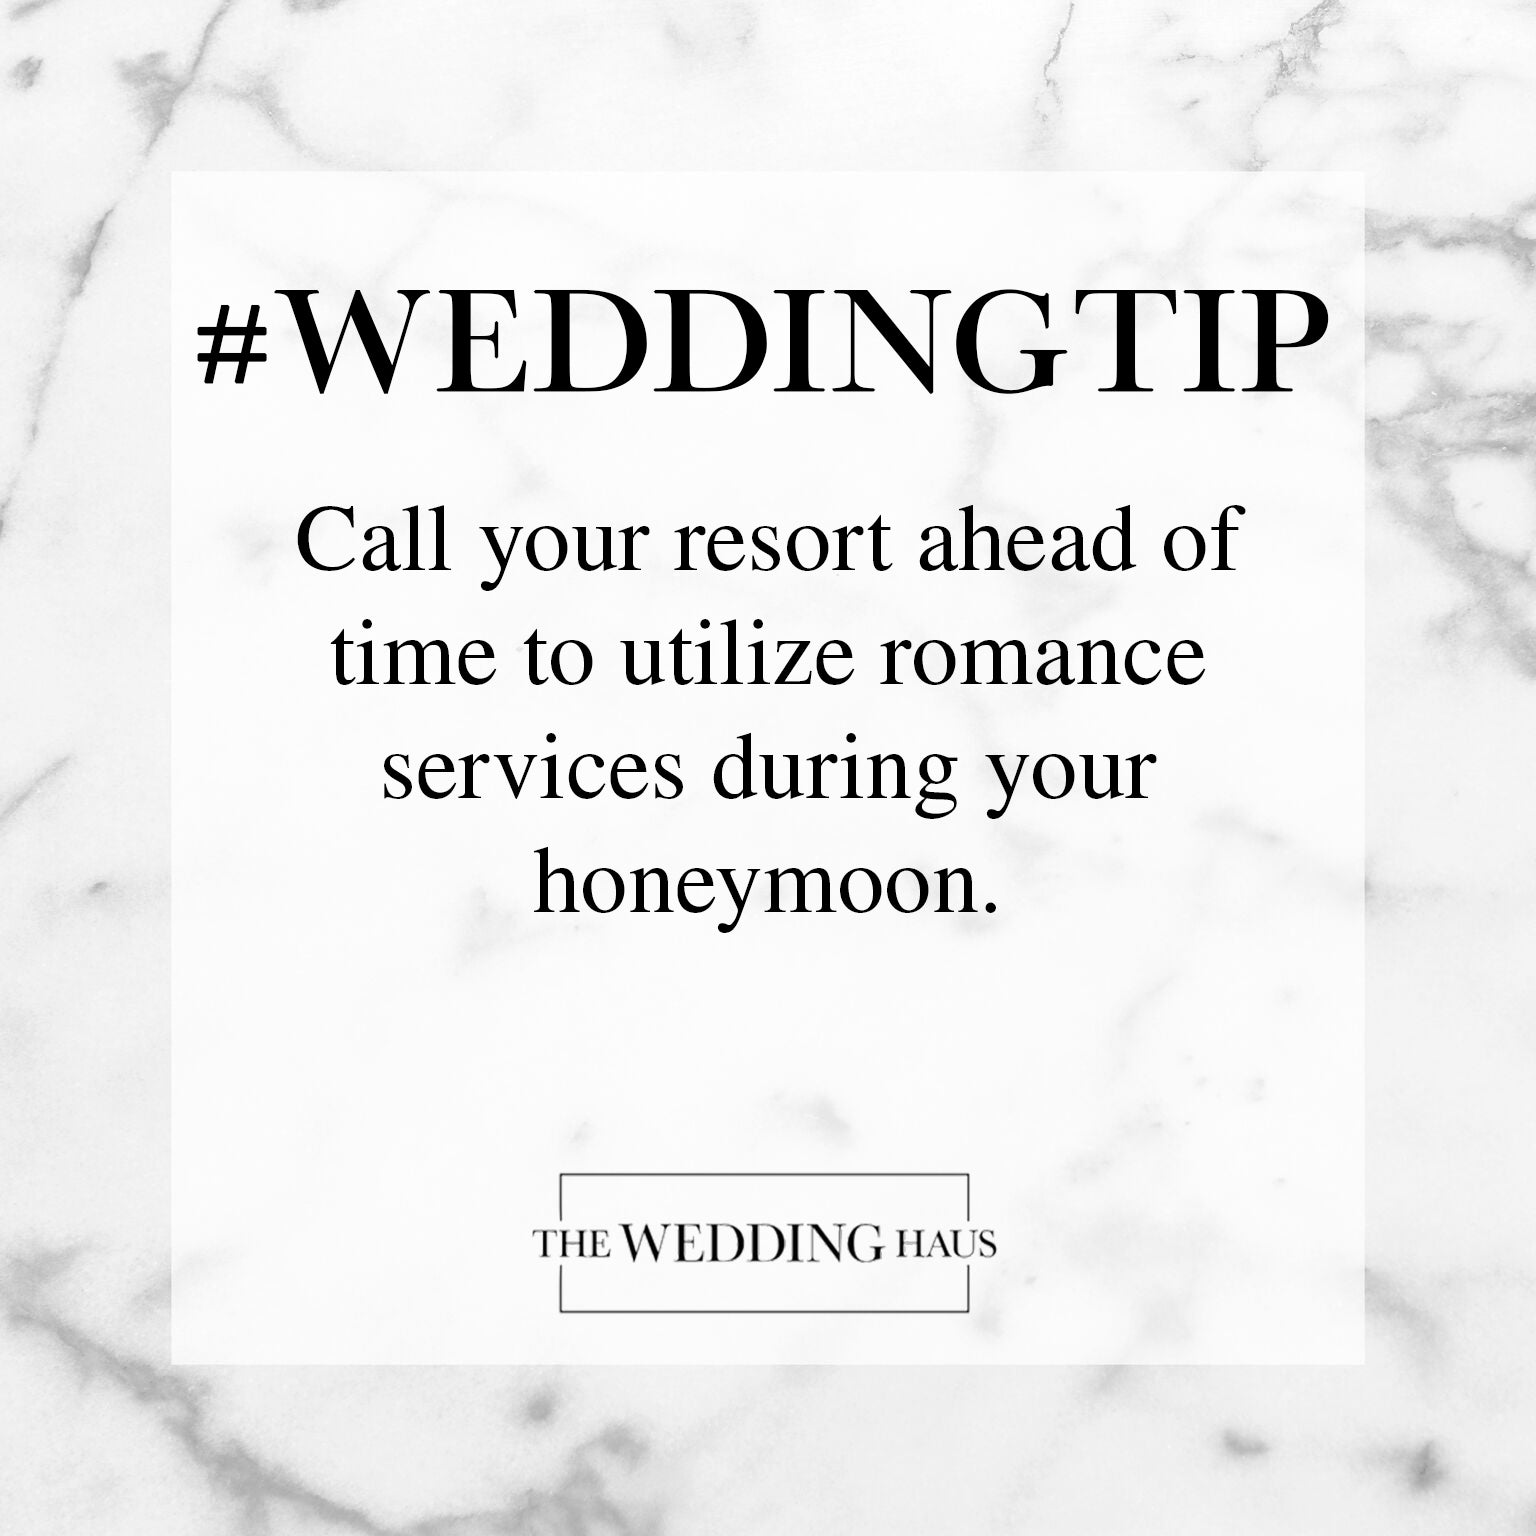 Utilize Romance Services During Your Resort Honeymoon Wedding Tip from The Wedding Haus